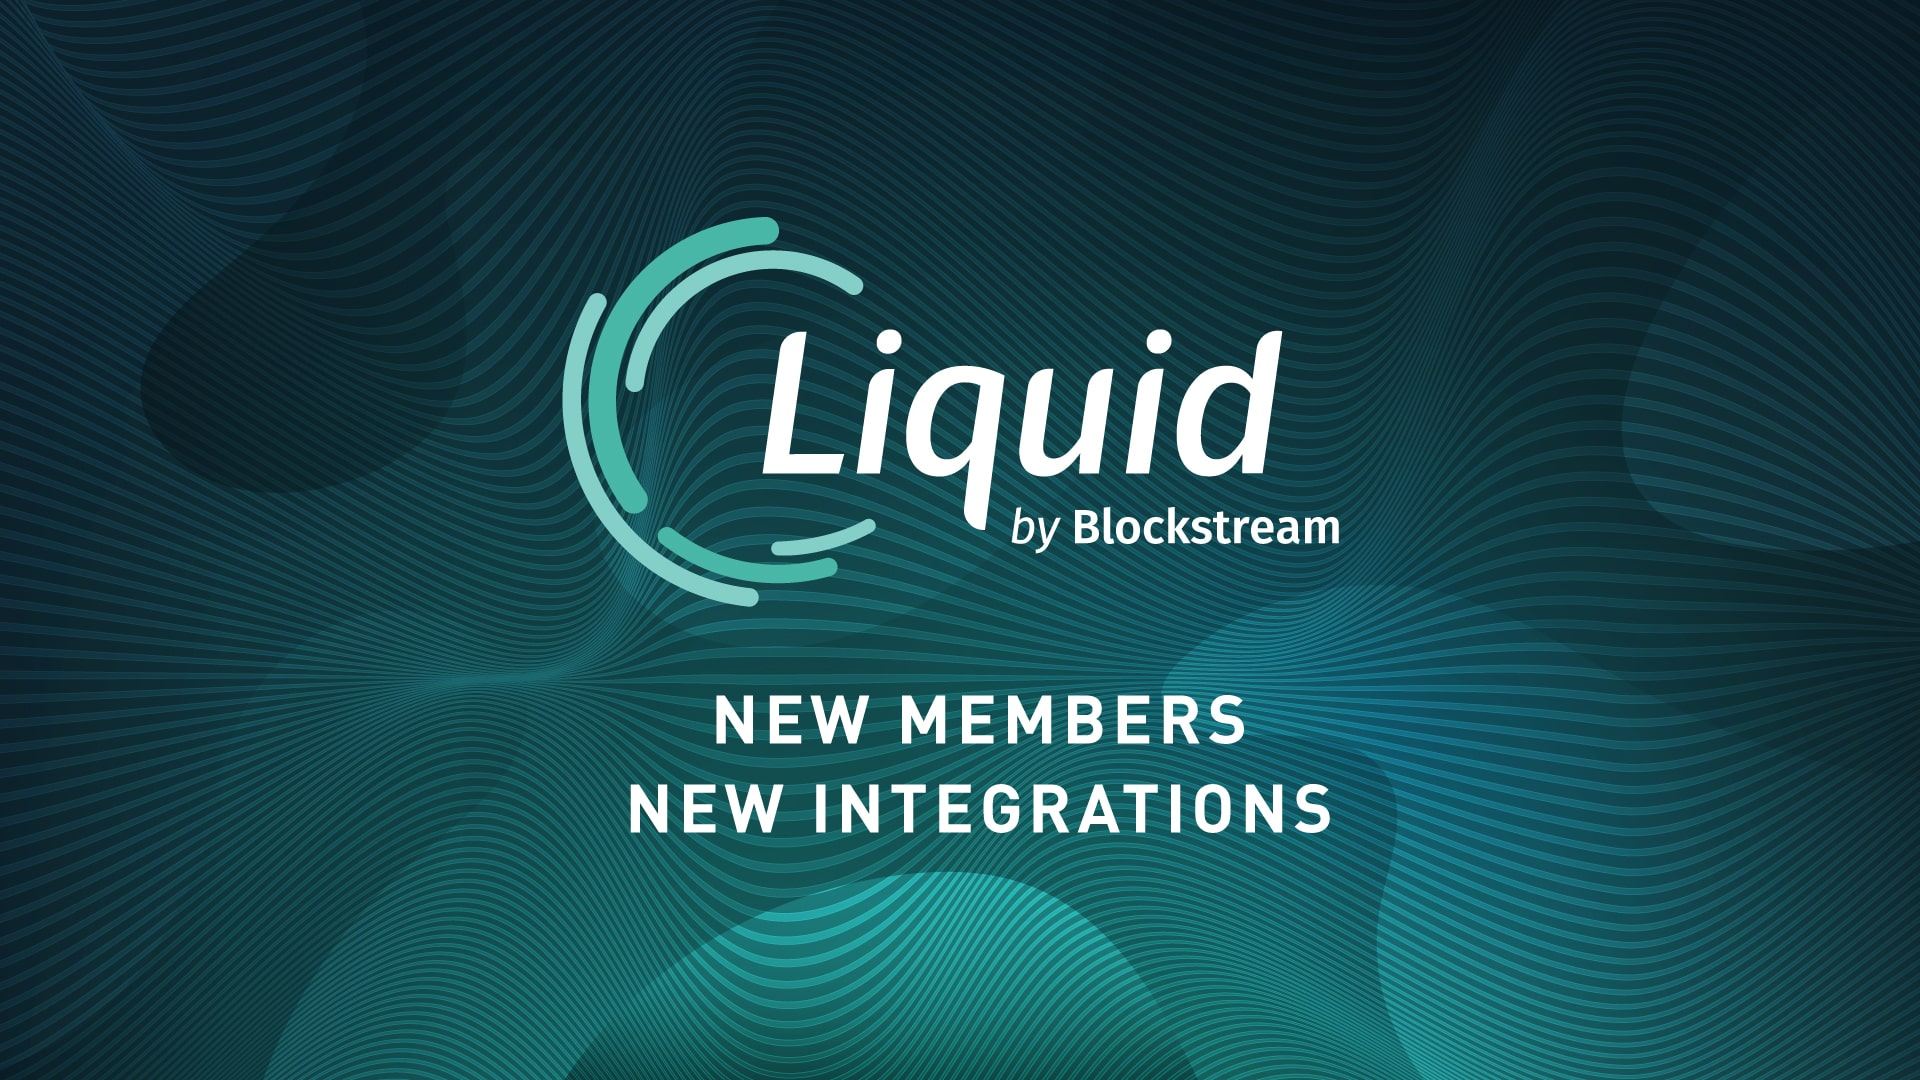 Blockstream - Liquid: New Members & Integrations